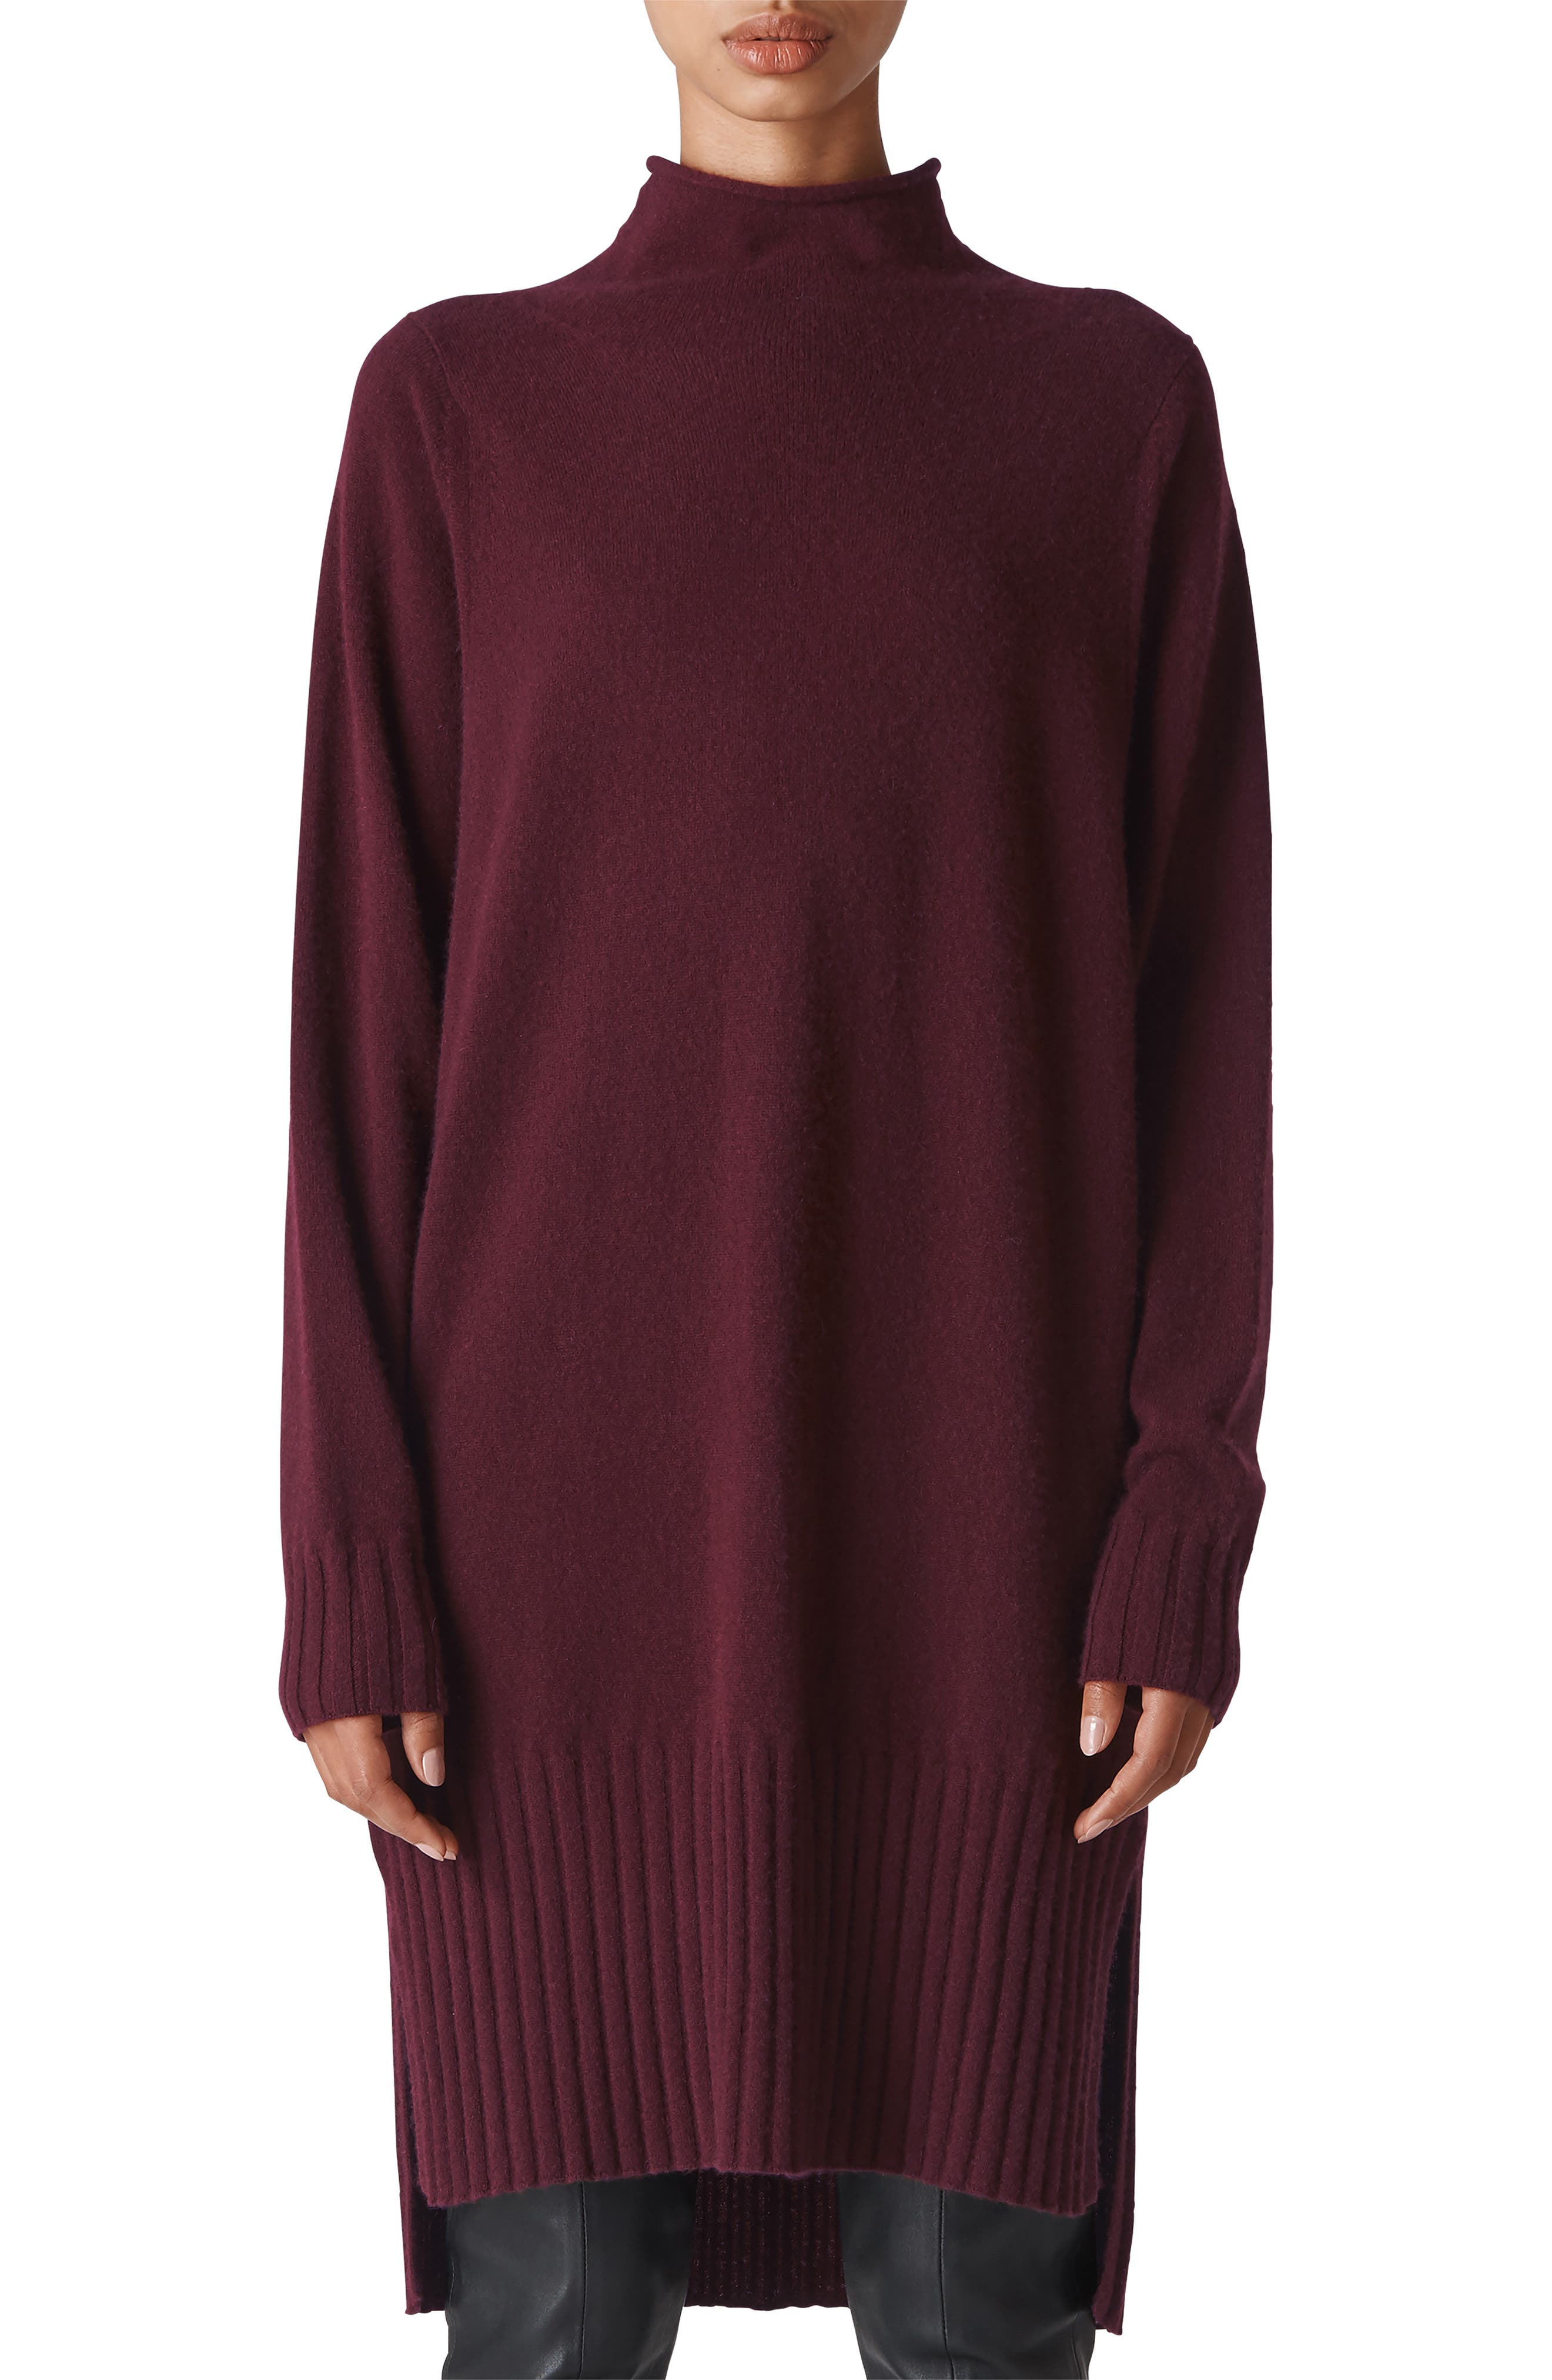 WHISTLES,                             Dolman Cashmere Sweater Dress,                             Main thumbnail 1, color,                             930